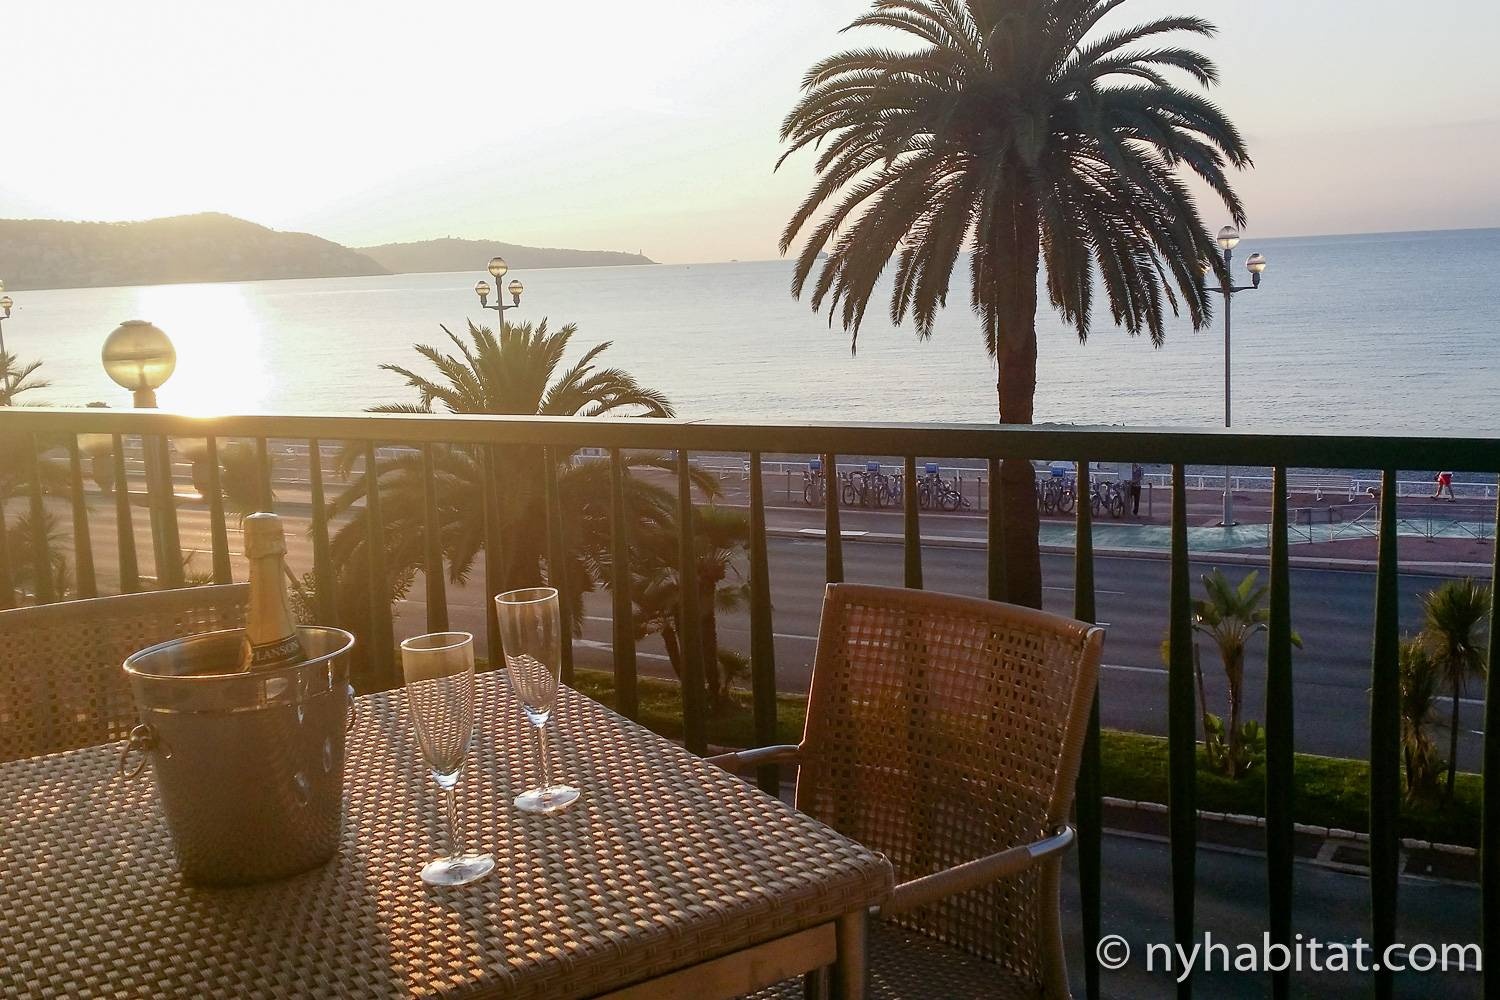 Photo du balcon privatif de l'appartement PR-1217 avec table, chaises, palmiers et vue sur la plage de Nice.